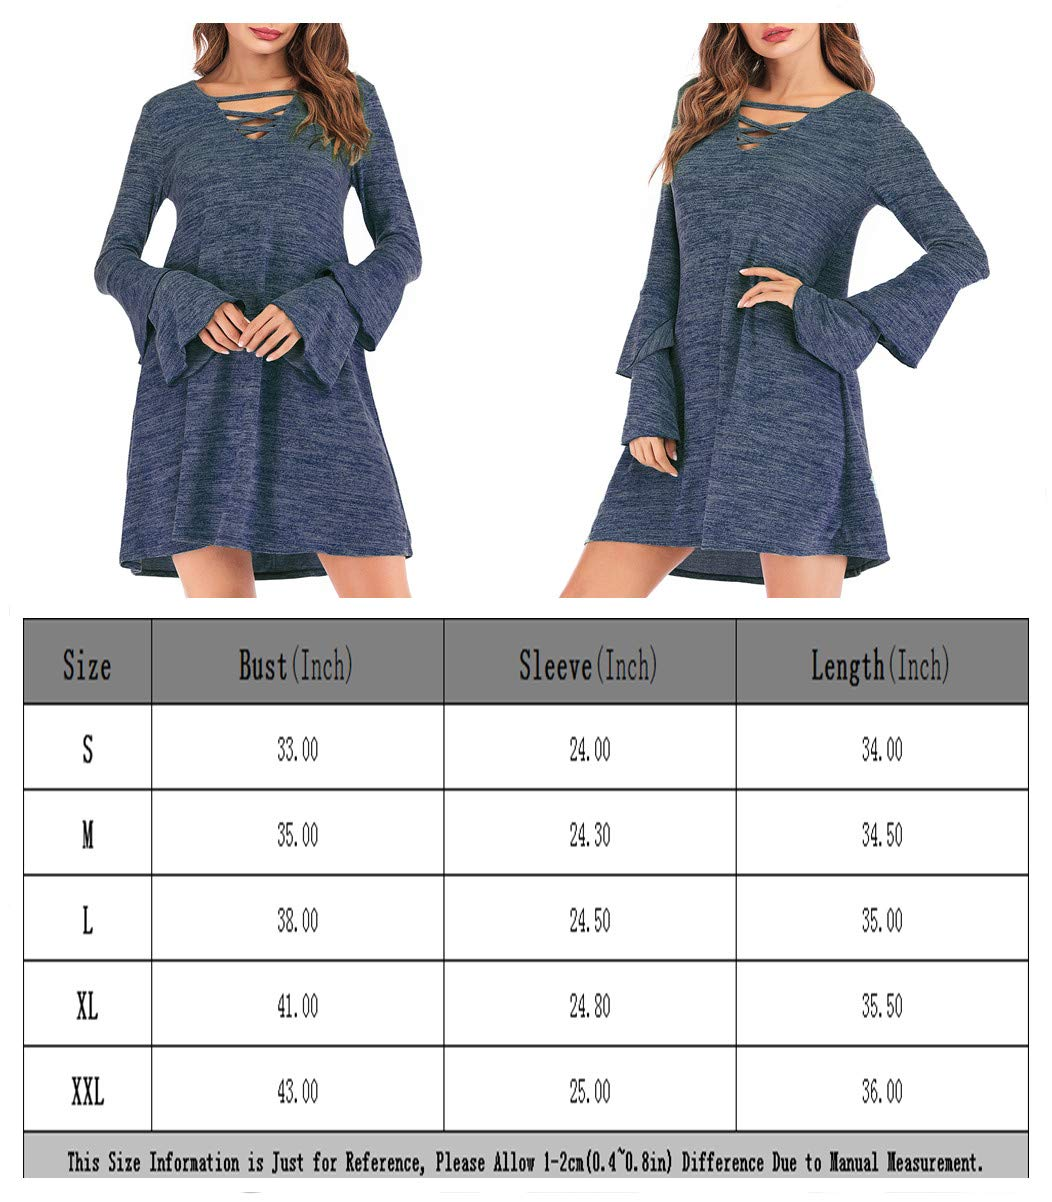 Eanklosco Women\'s Sweater Dress Flare Long Sleeve Knit Jumper Tops Criss Cross V Neck Loose Swing Tunic Dress (Blue, M)